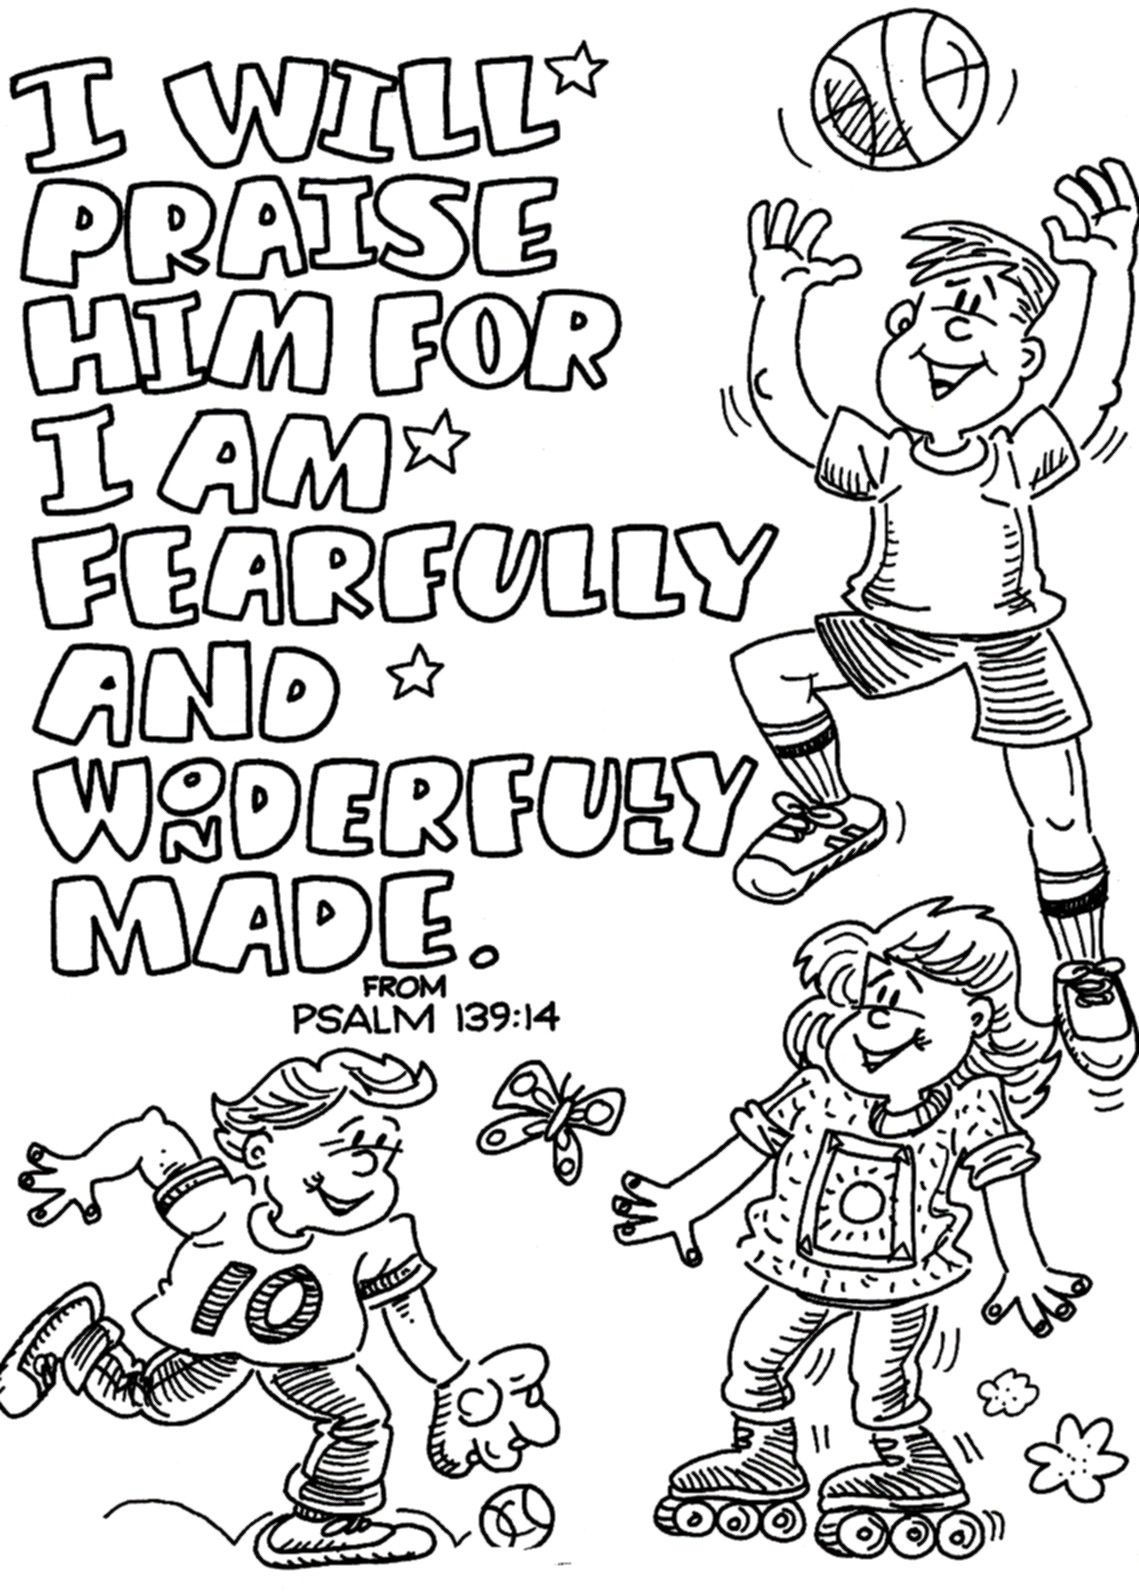 Praise and Worship Coloring Pages Printable 13m - Free For Children